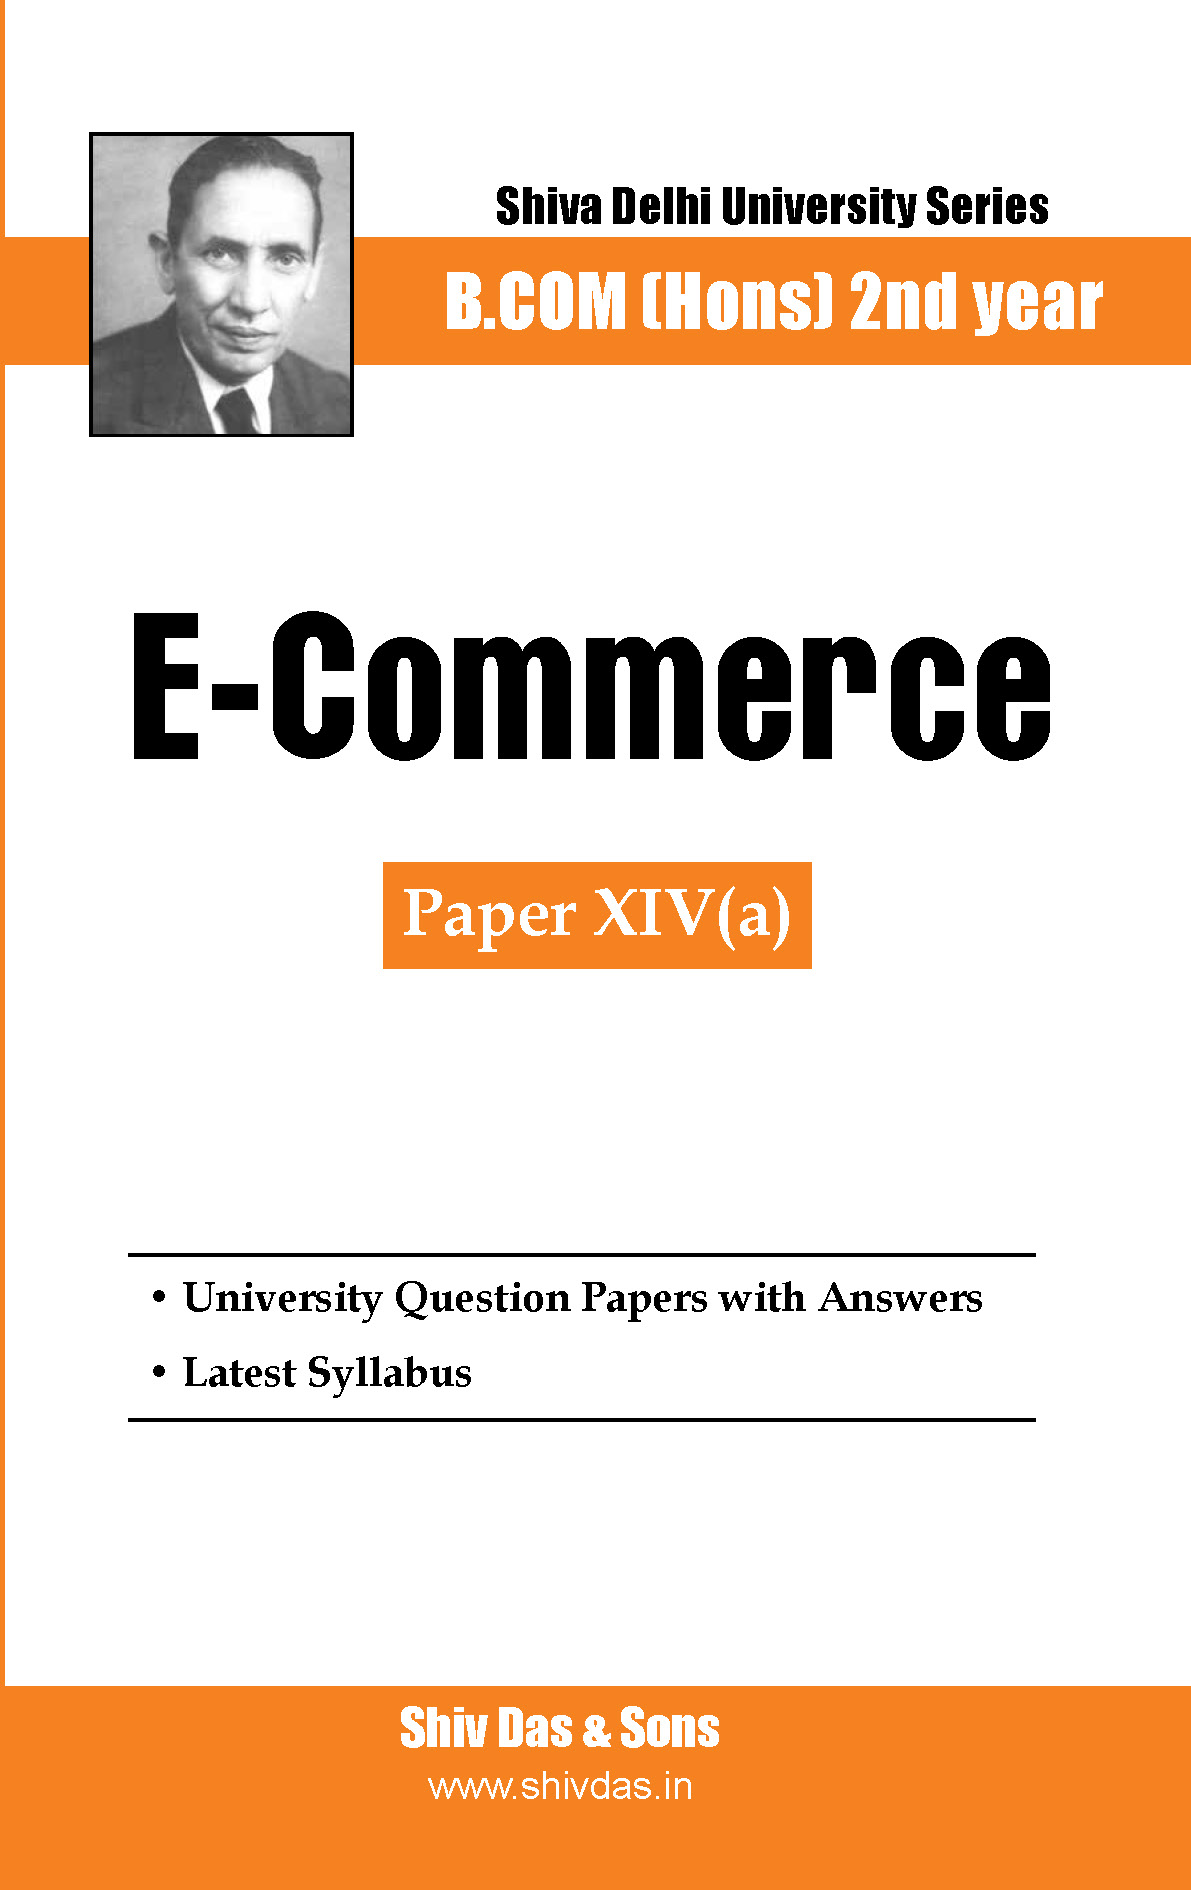 B.Com Hons-SOL/External-2nd Year-E-Commerce-Shiv Das-Delhi University Series